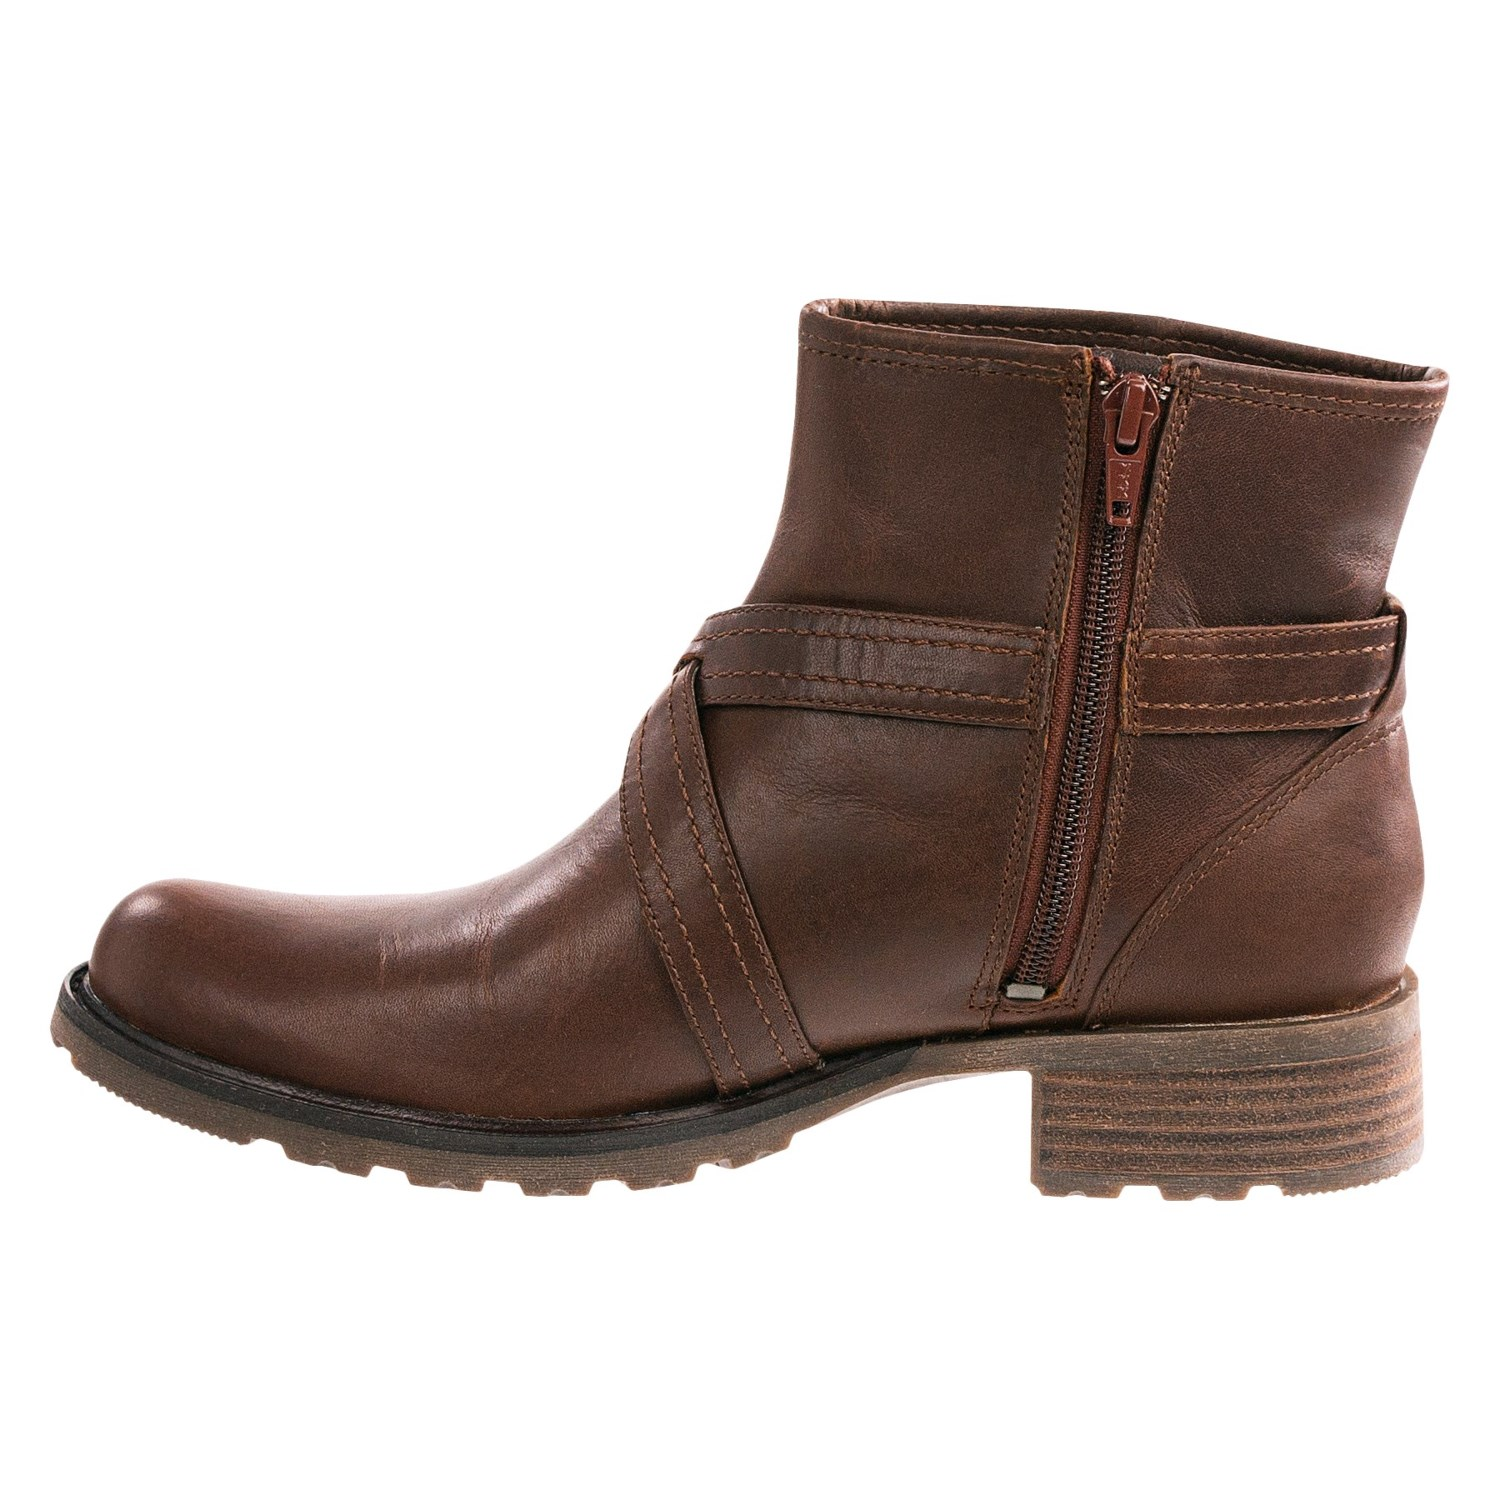 Overstock uses cookies to ensure you get the best experience on our site. If you continue on our site, you consent to the use of such cookies. Learn more. OK Boots. Clothing & Shoes / Shoes / Kids Roma Boots Girls Ilona Mid-Calf Pull On Rain Boots. Quick View.